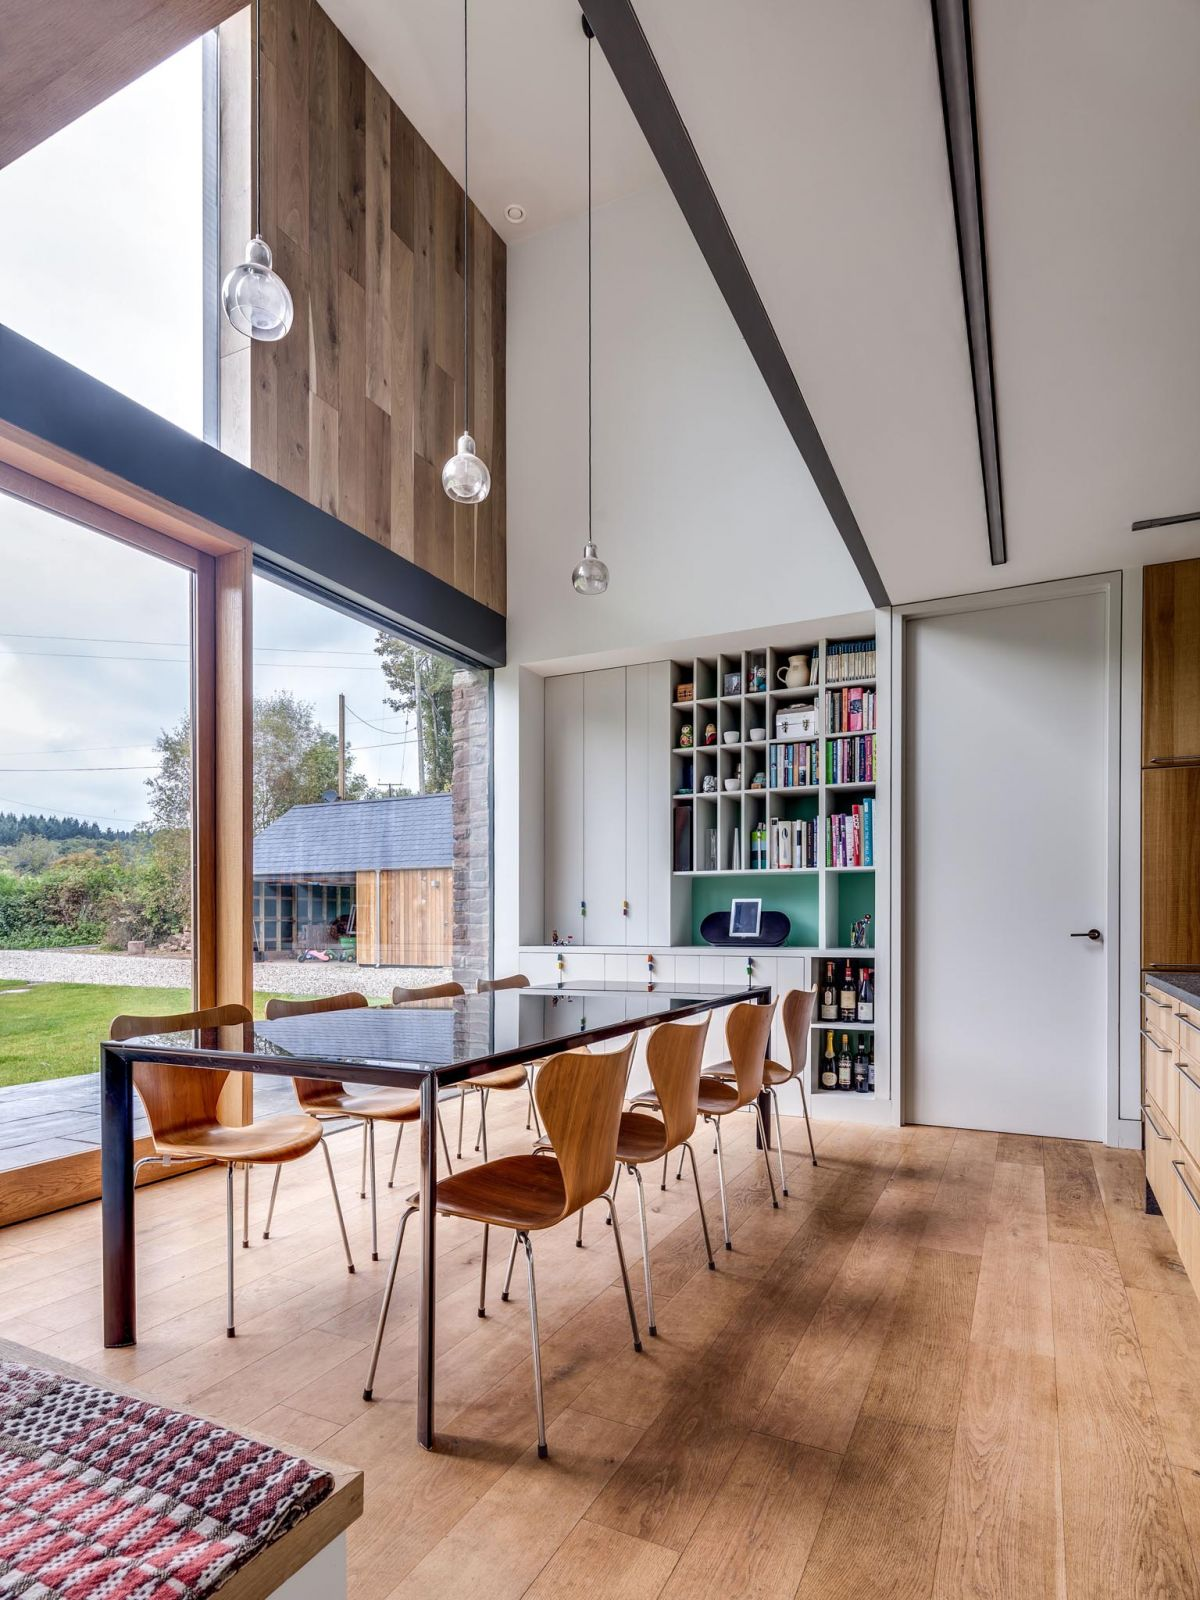 The Nook by Hall + Bednarczyk Architects, photo by Simon Maxwell